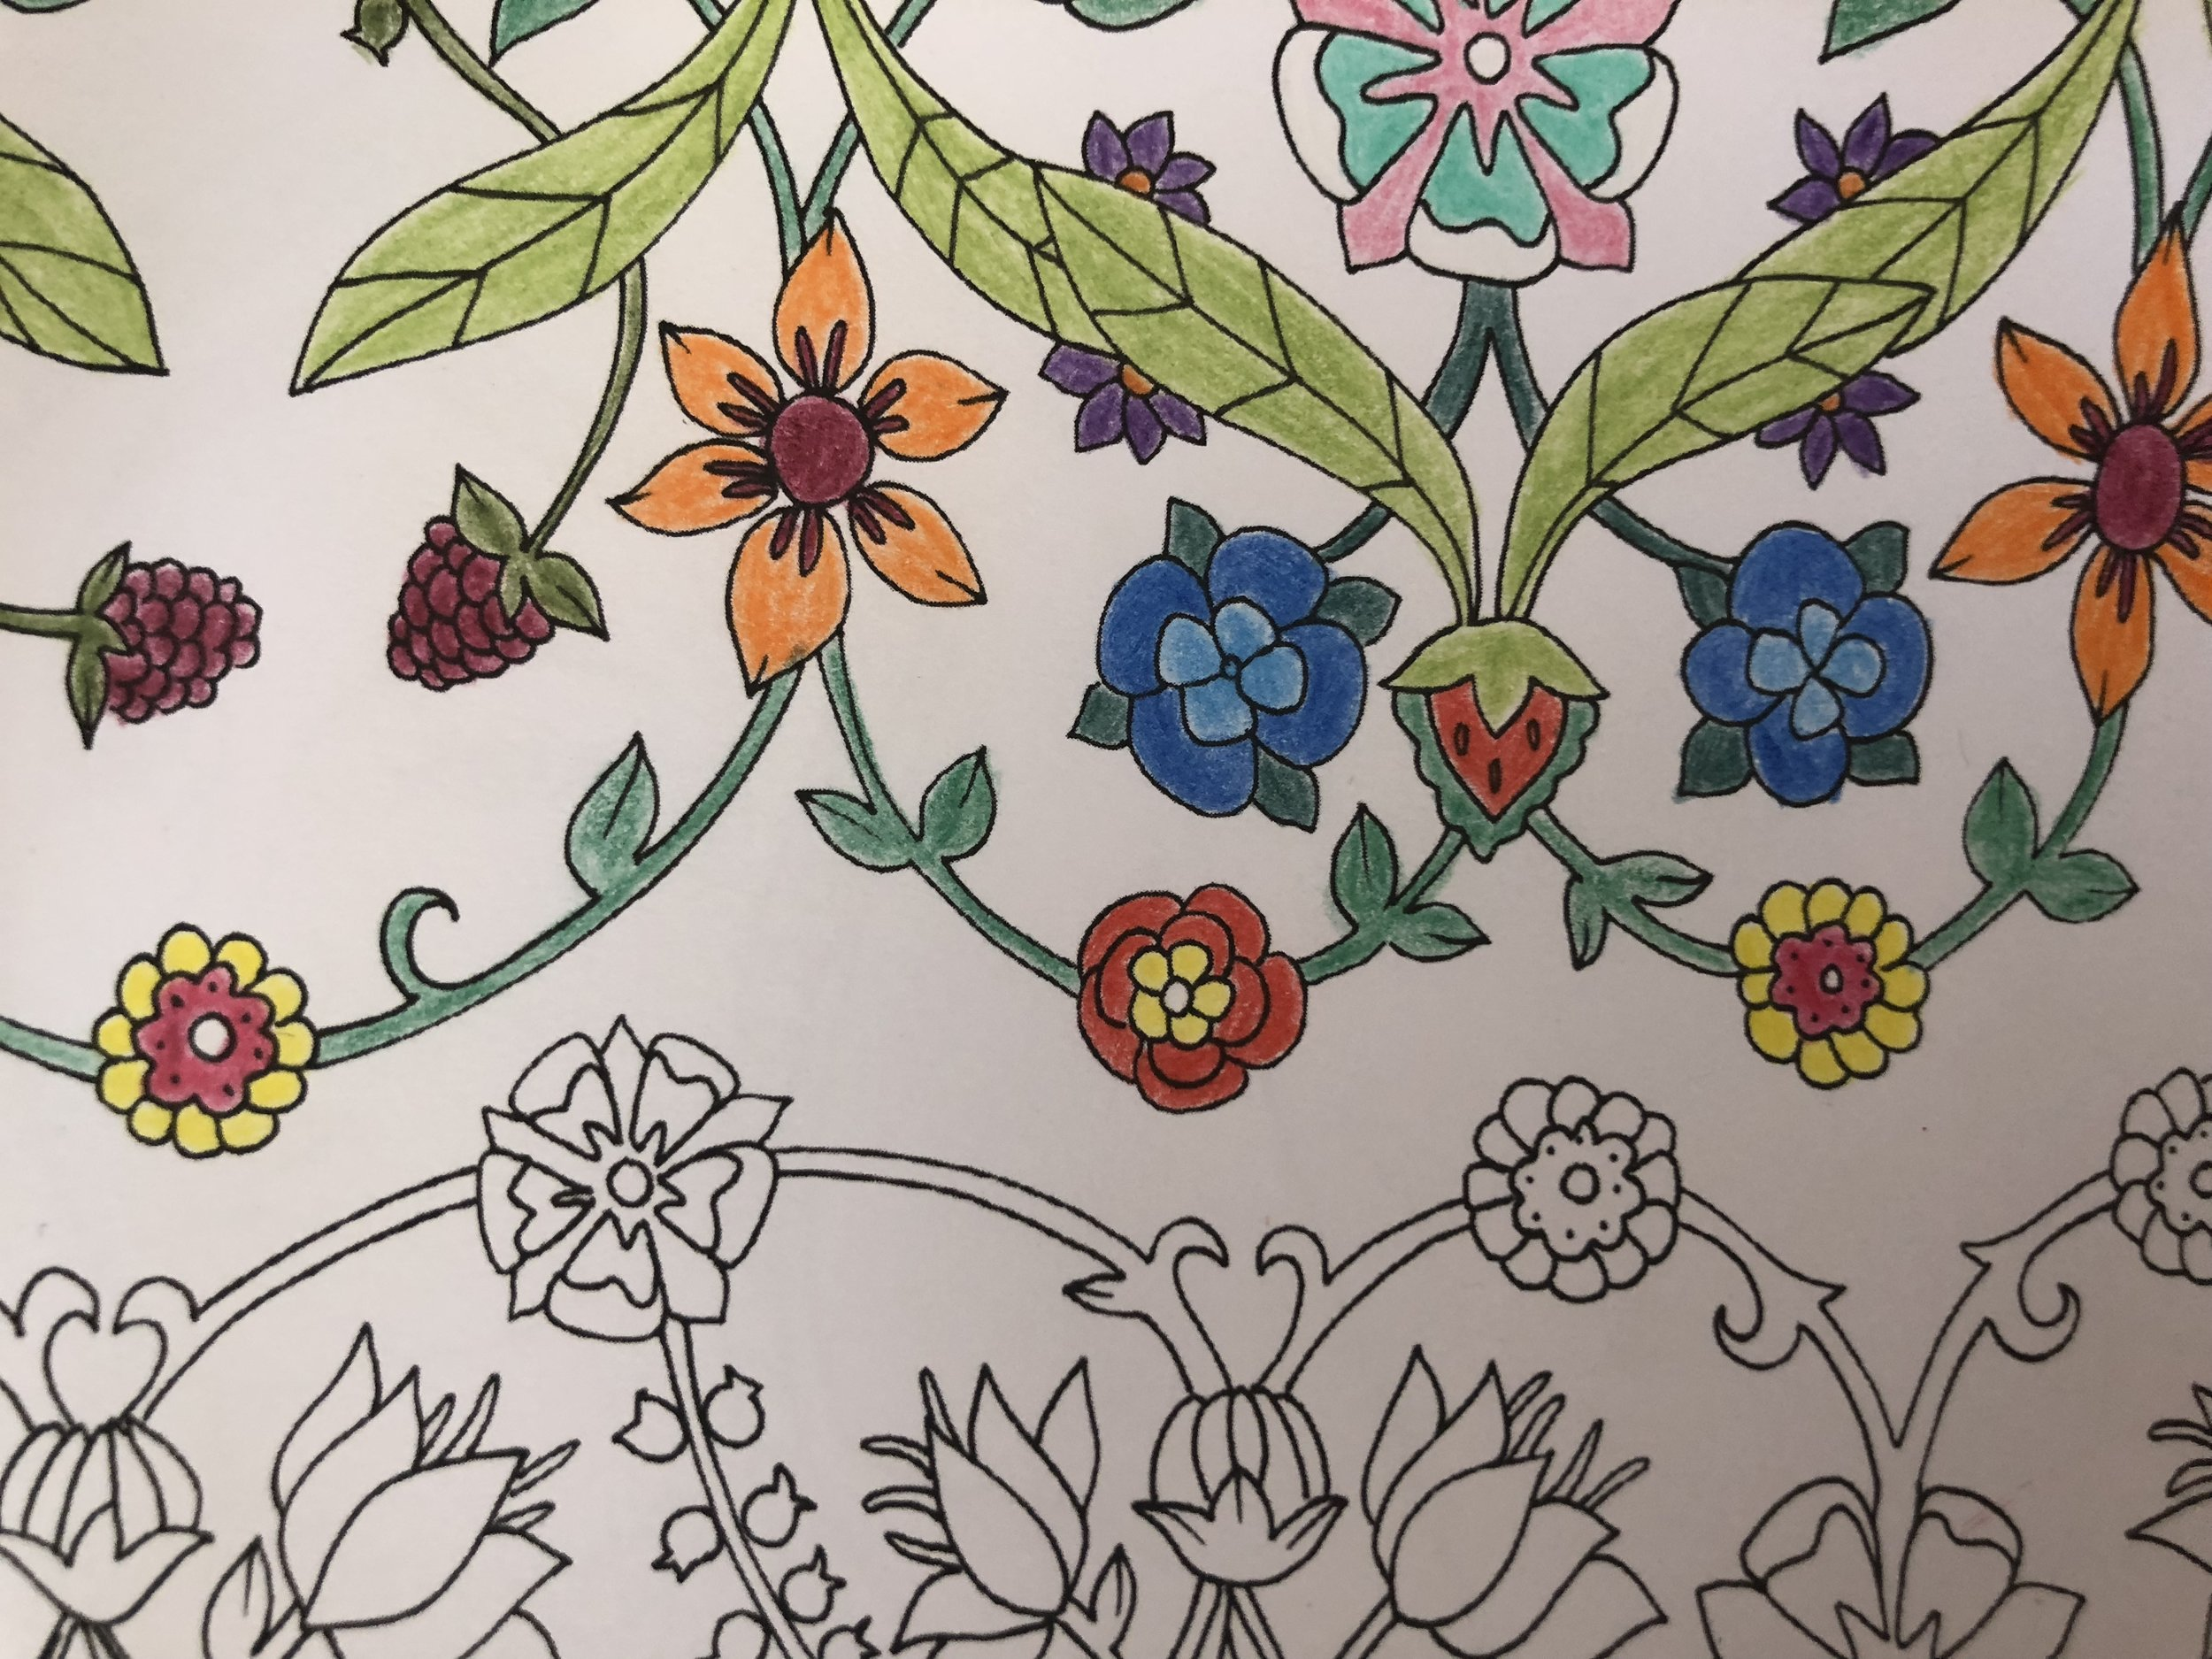 Tudor flower design that was inspired by a 16th century embroidery pattern. Photo: The Medieval Magazine.